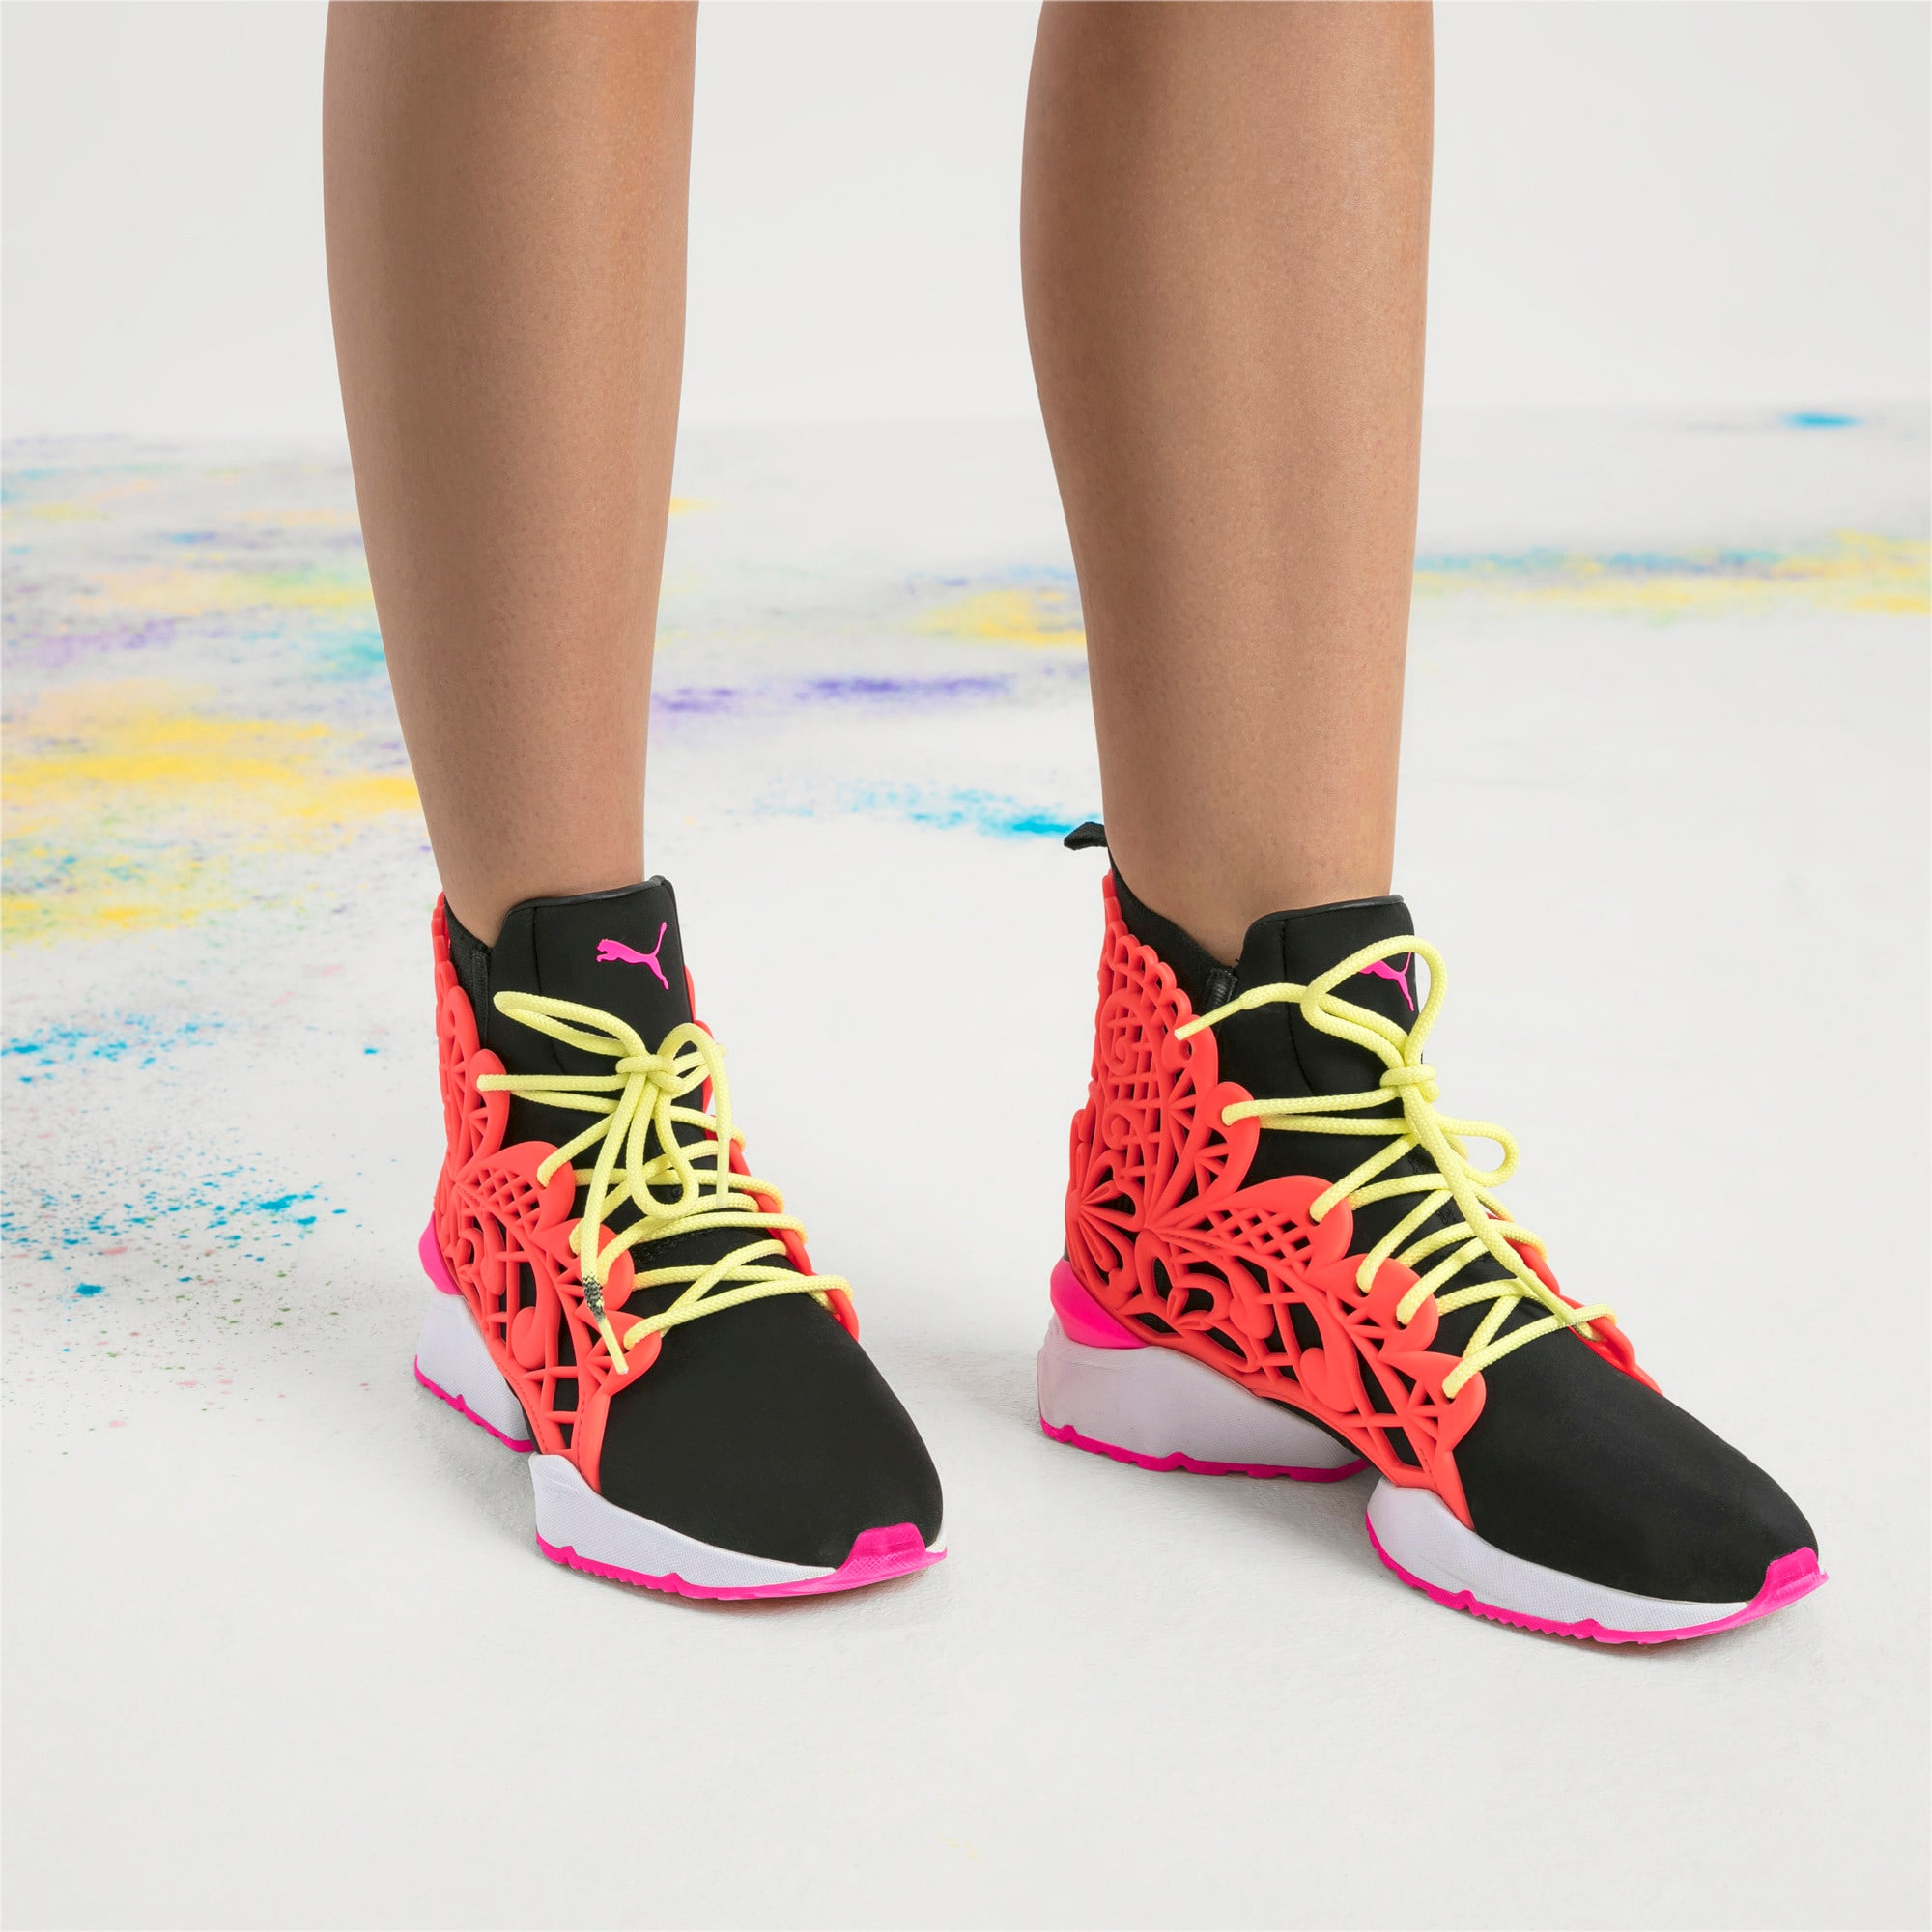 Puma x Sophia Webster Muse Echo Candy Princess Sneakers